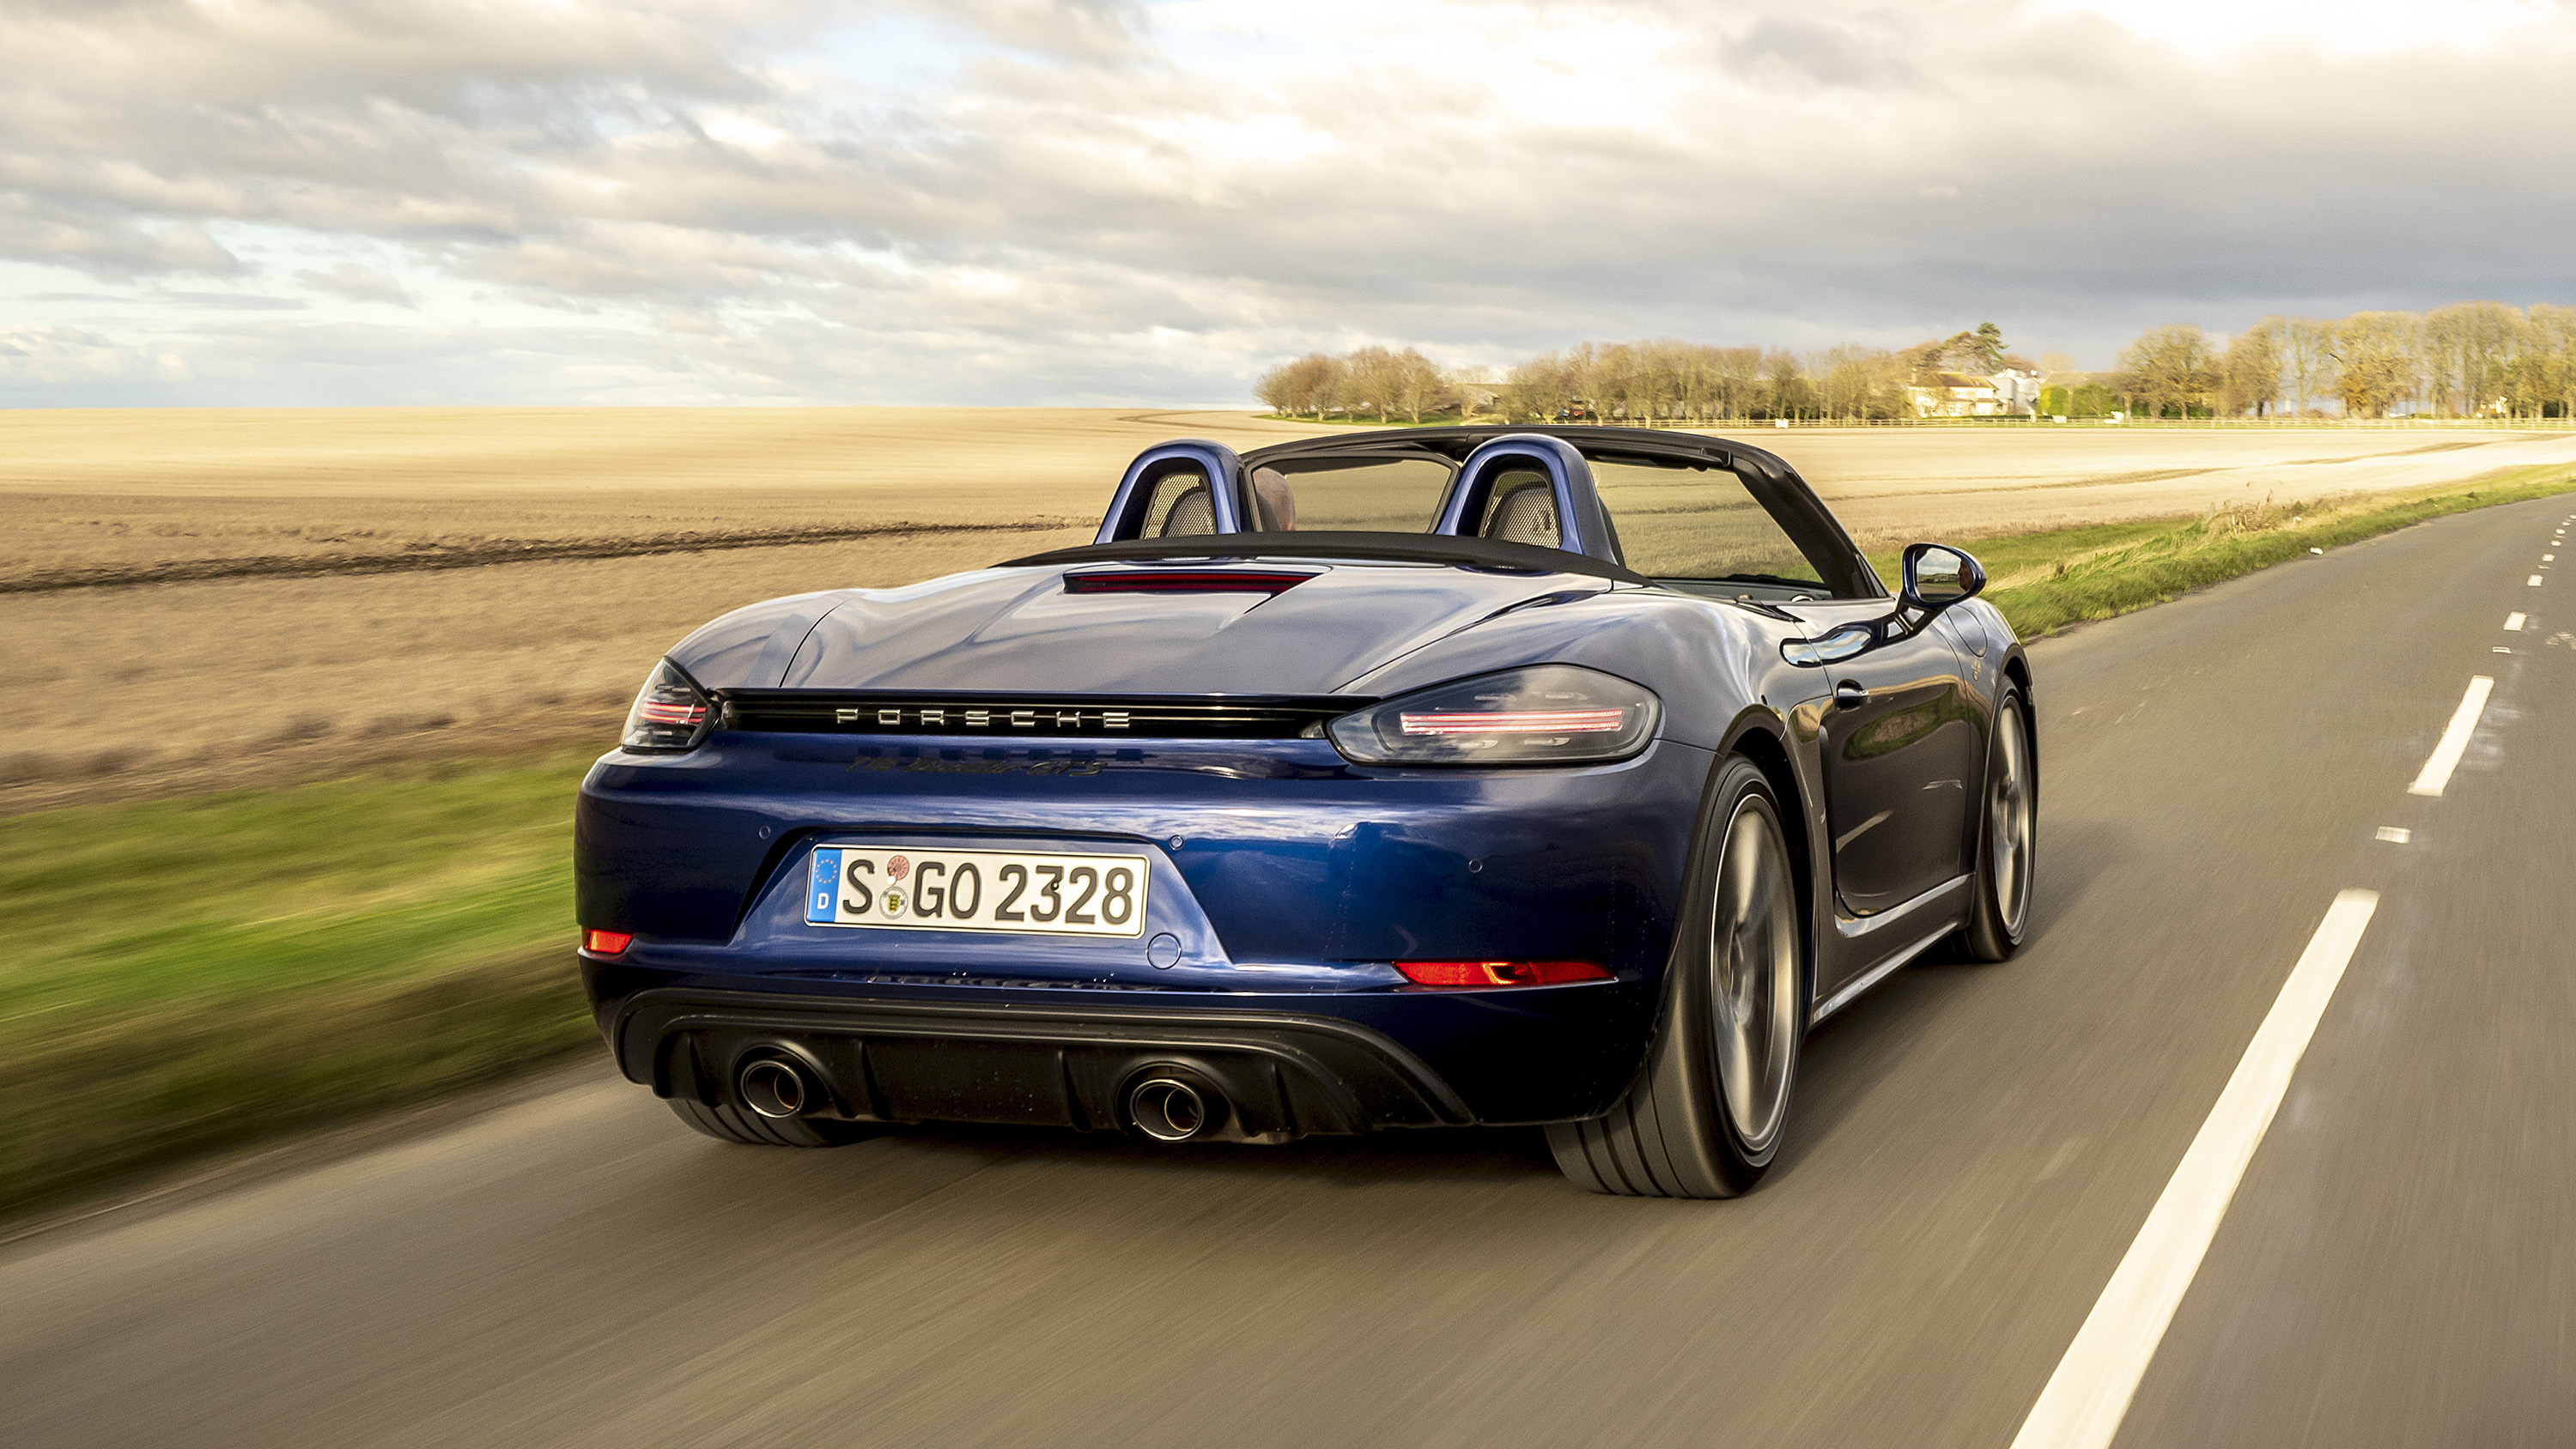 Porsche 718 Boxster Gts 4 0 Review Now With Paddles Top Gear